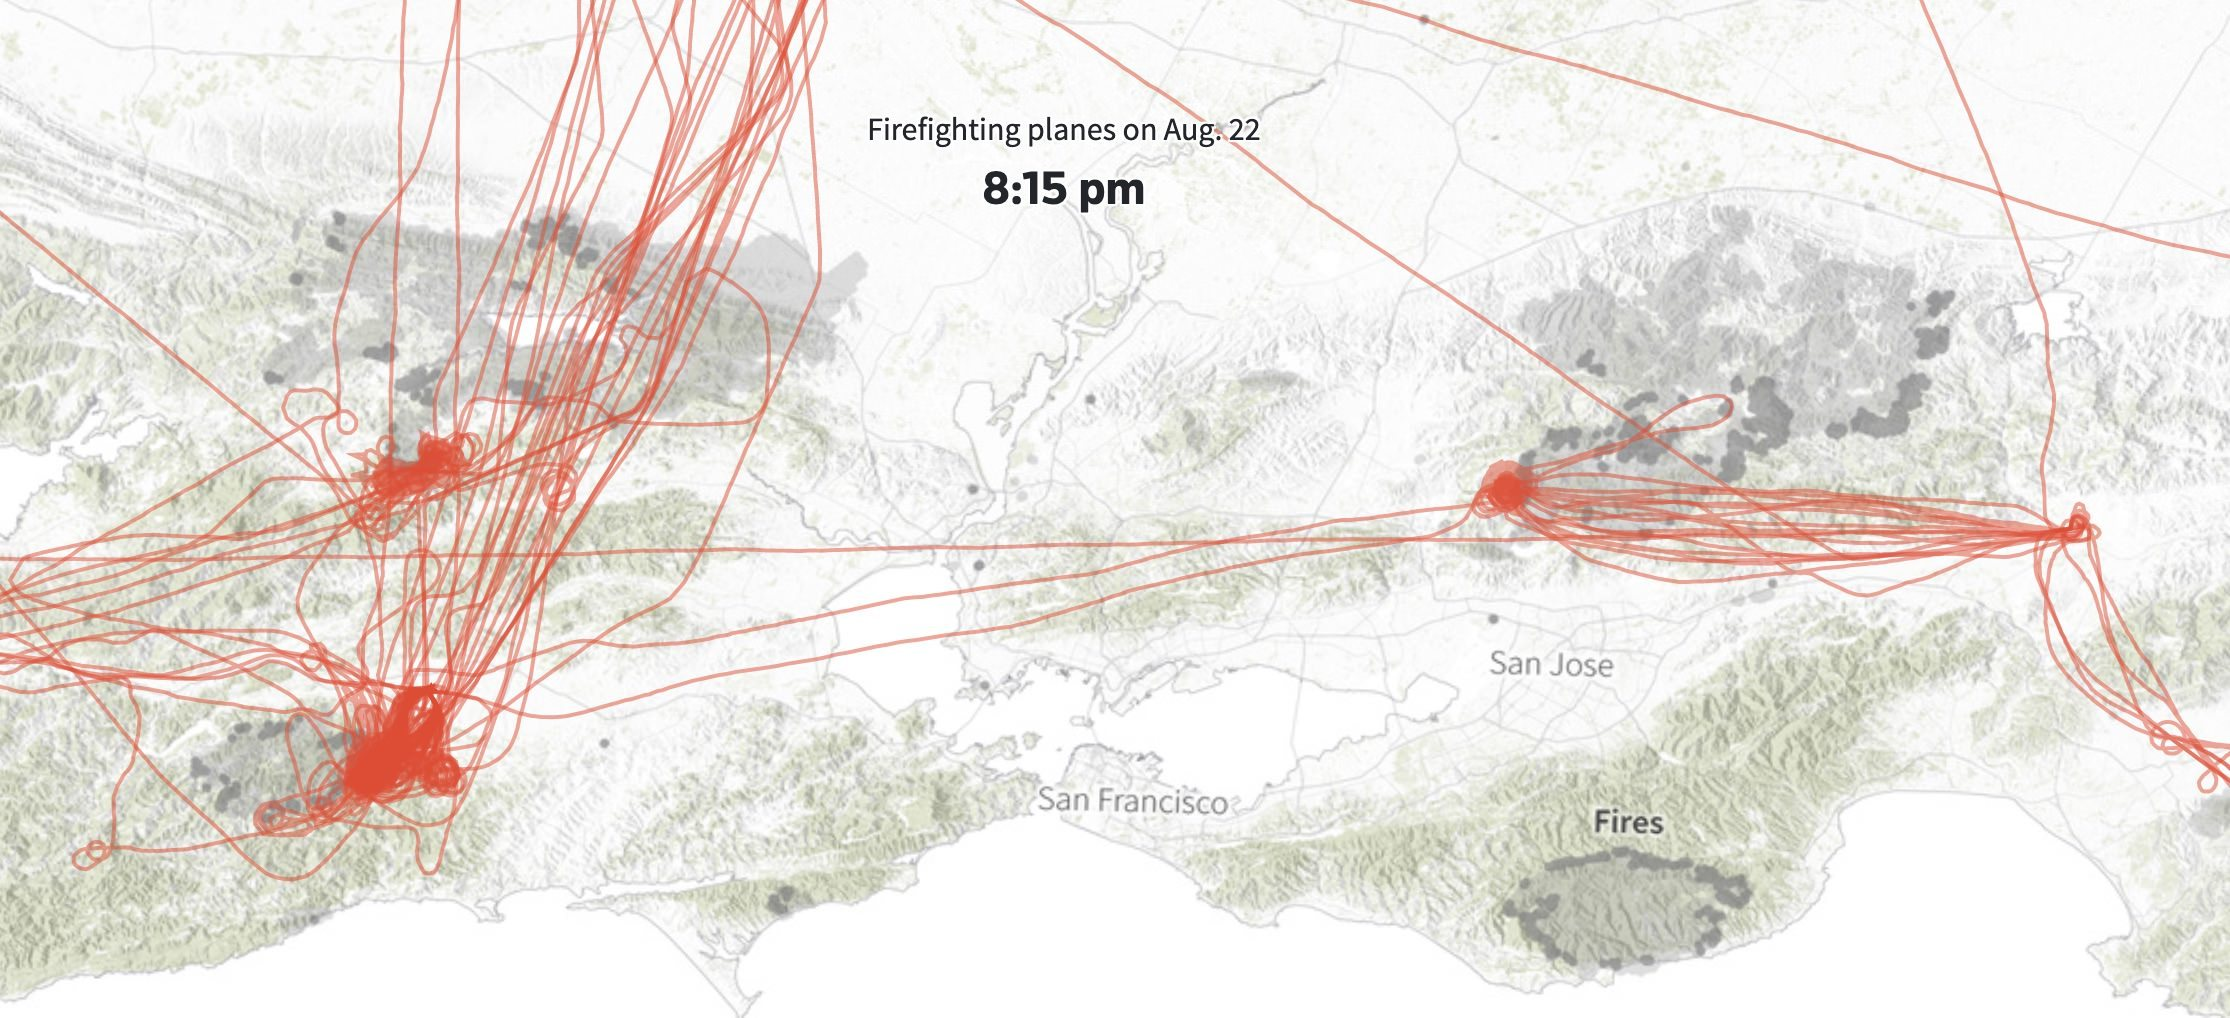 Aerial fire fighting mapped